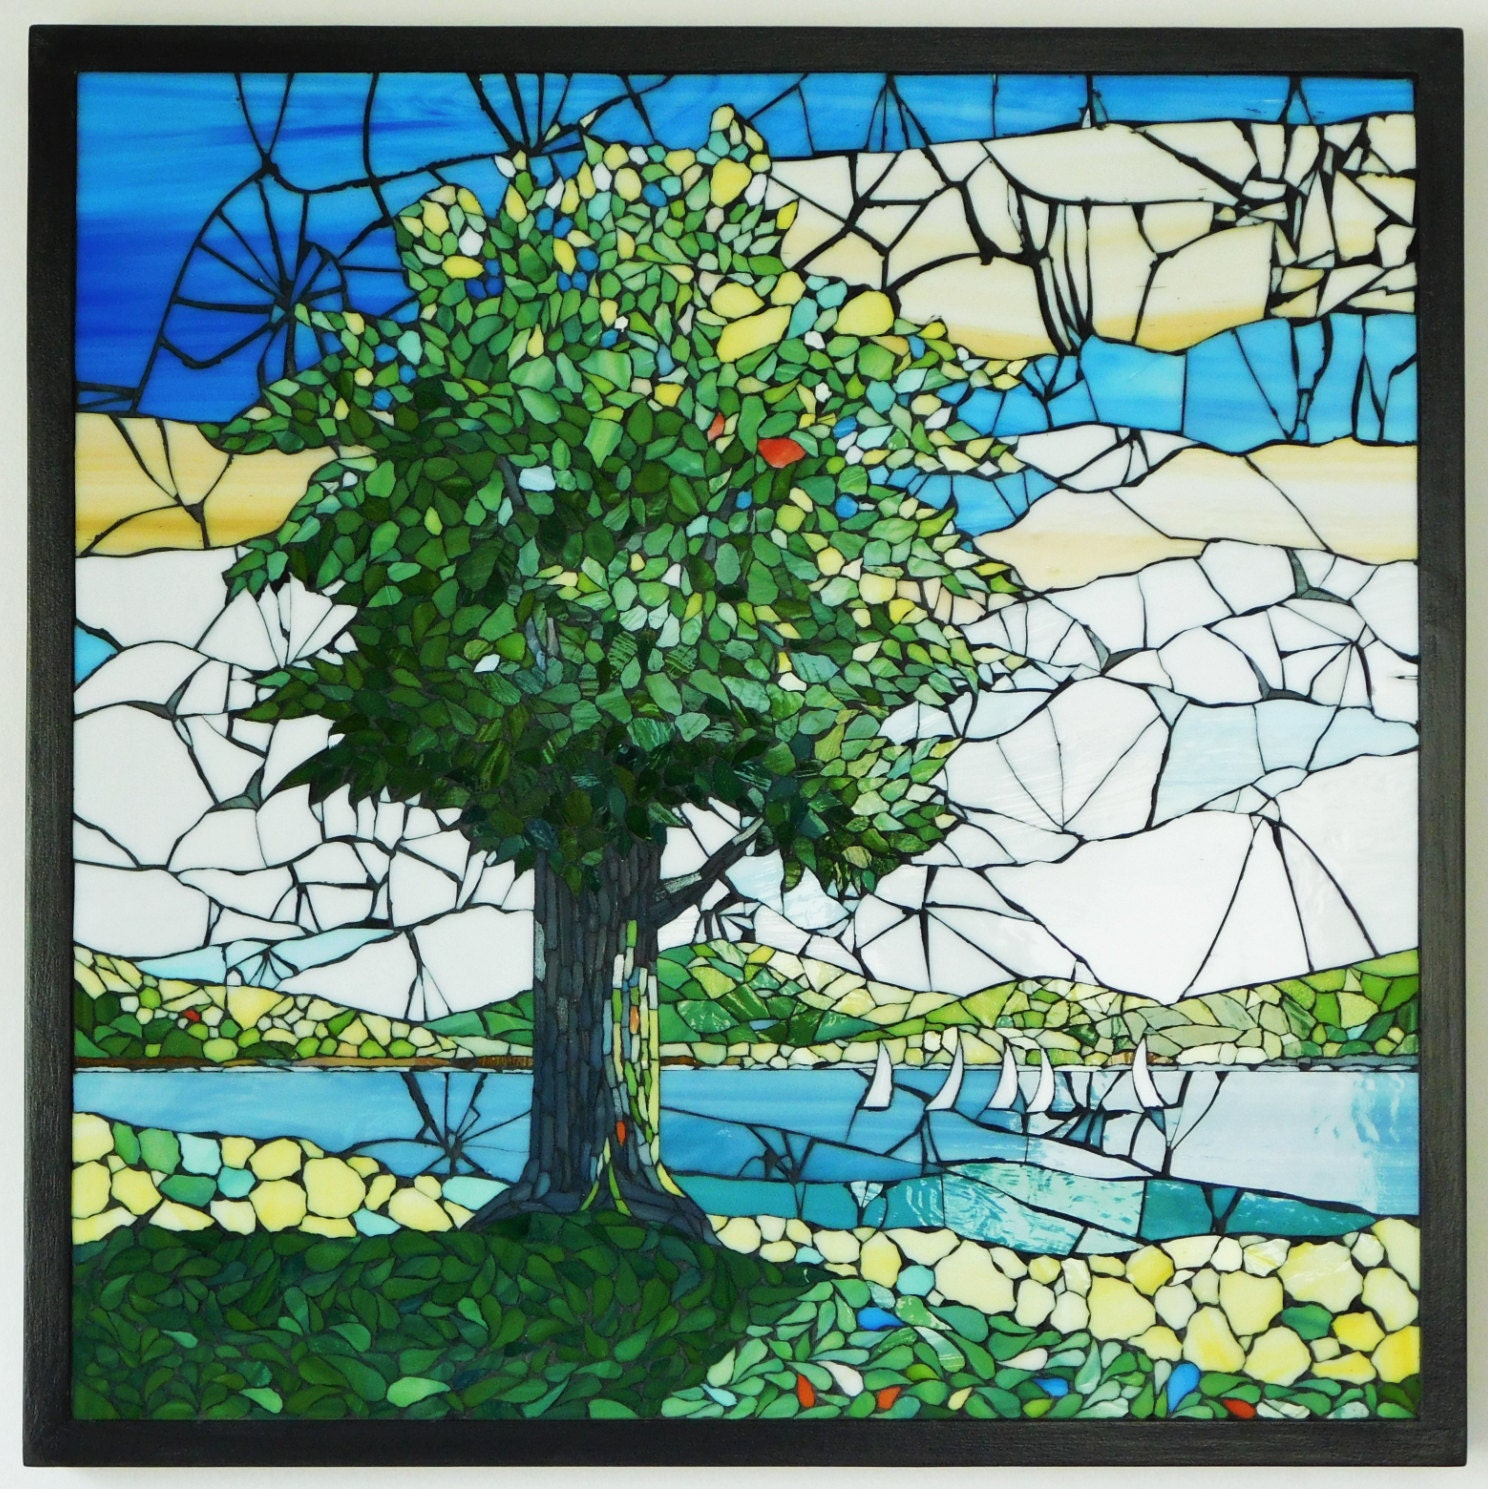 Stained glass mosaic landscape with tree from